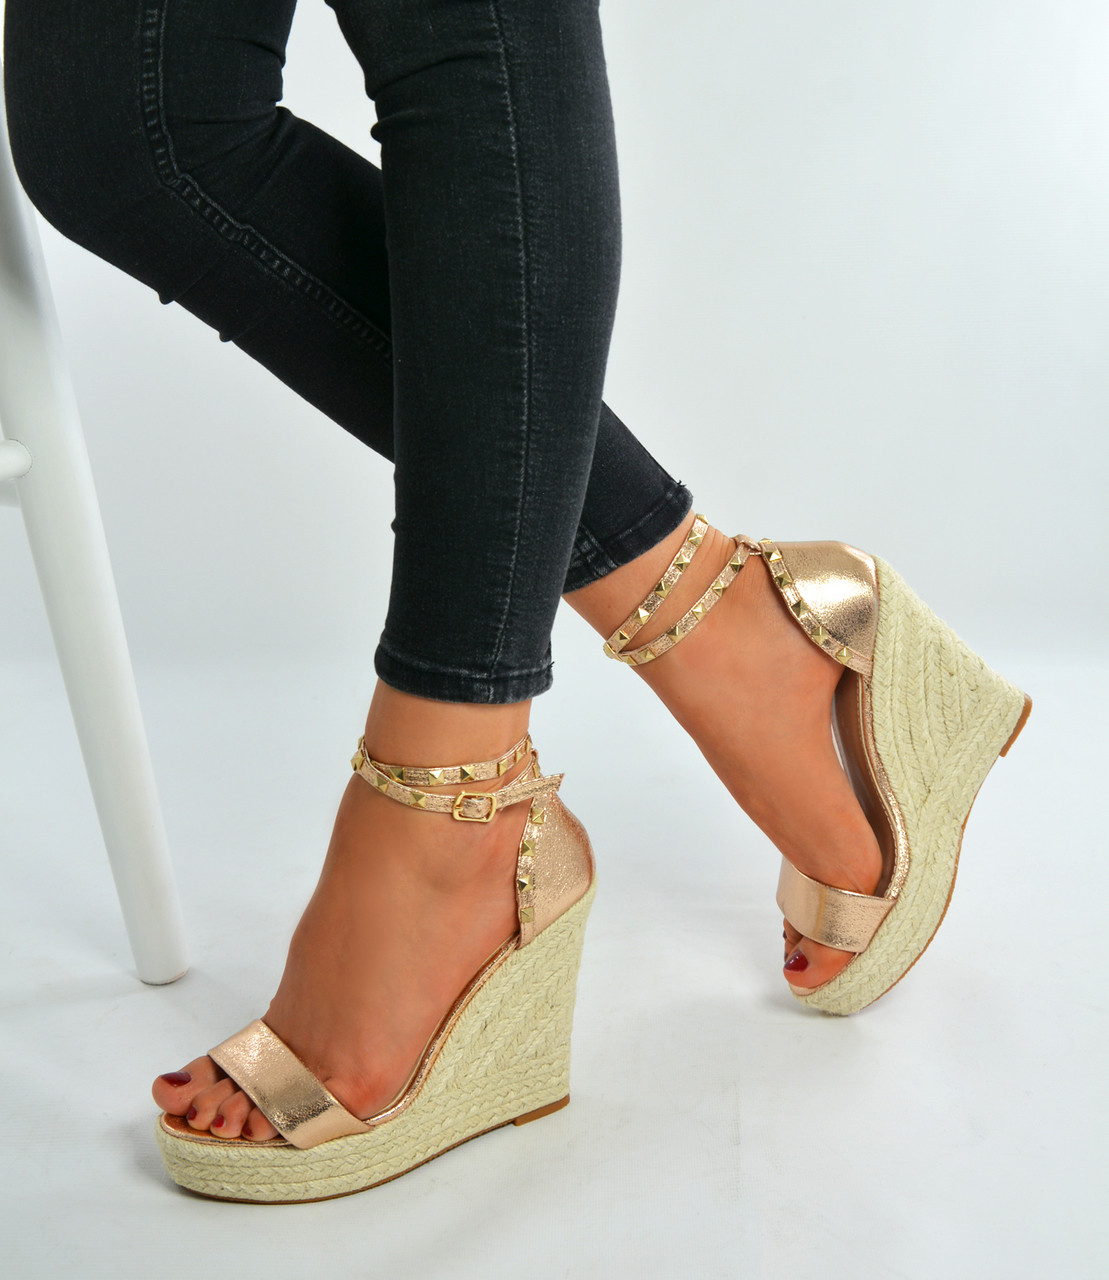 186b21362773 New Womens Ladies Espadrille High Heel Wedges Studded Platforms ...